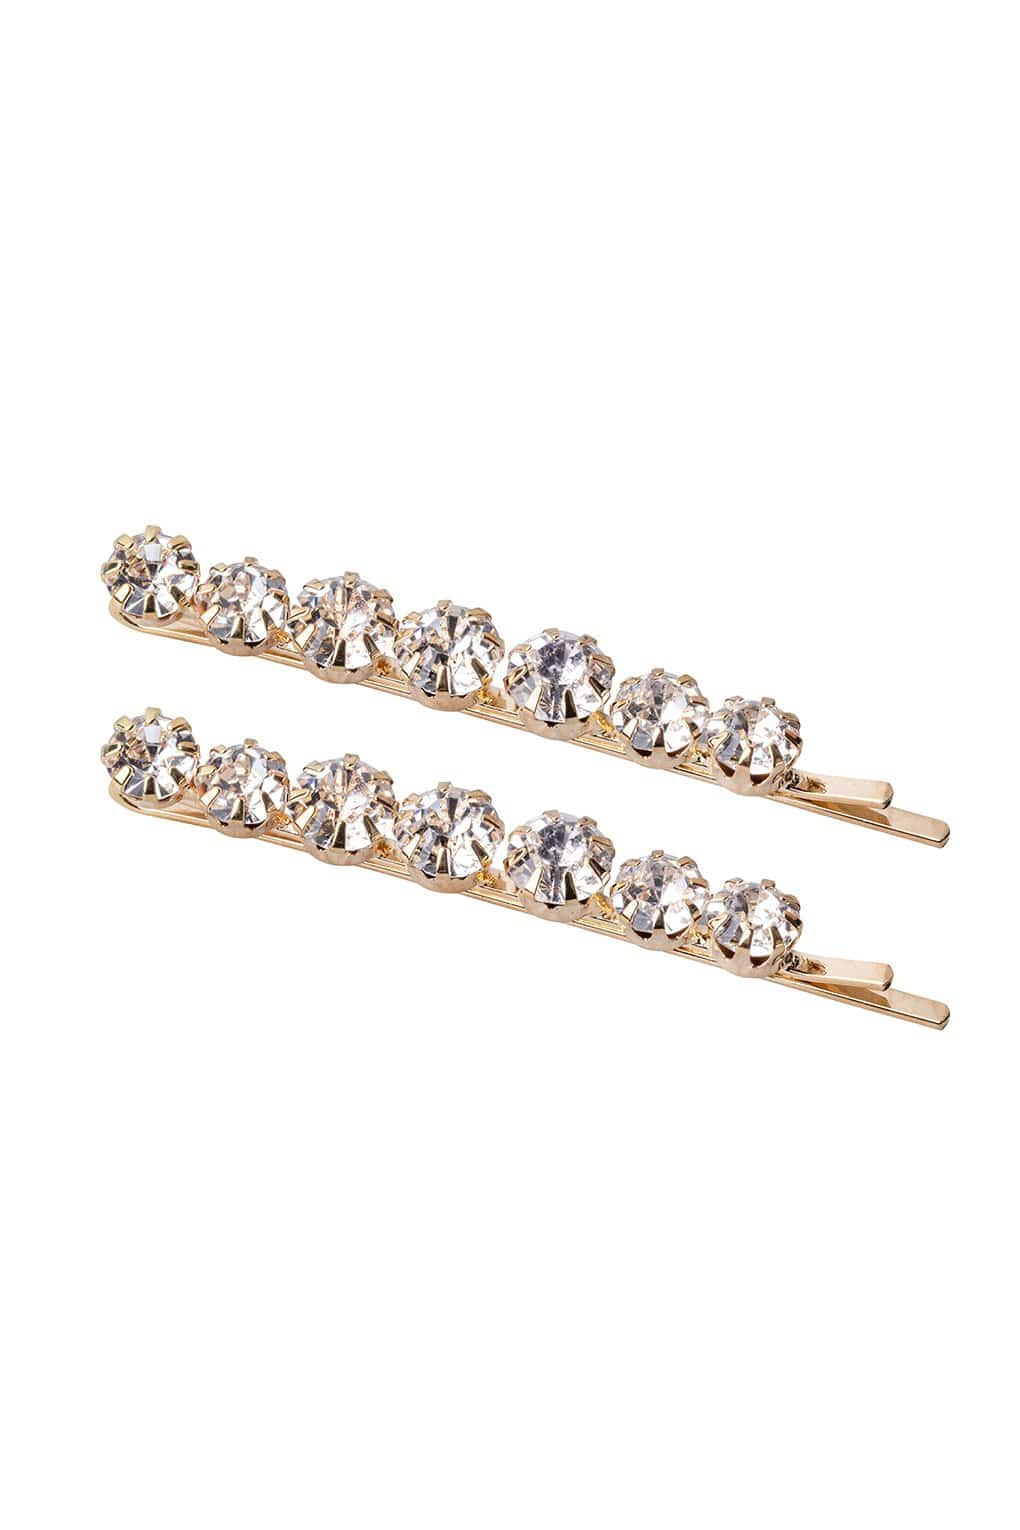 FOUR CORNERS Marilyn Hairclip - Gold - Set of Two - Magpie Style